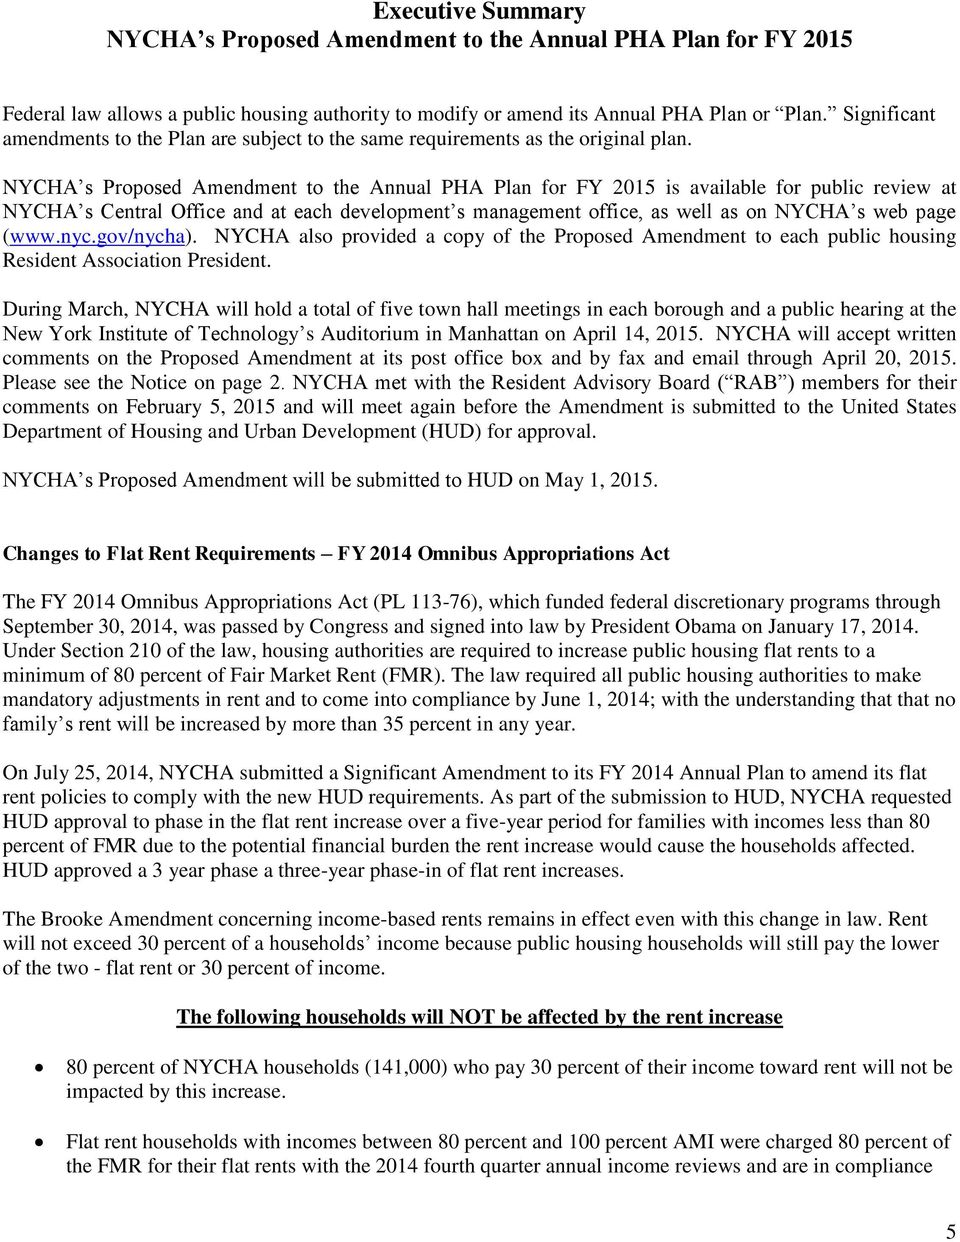 NYCHA s Proposed Amendment to the Annual PHA Plan for FY 2015 is available for public review at NYCHA s Central Office and at each development s management office, as well as on NYCHA s web page (www.